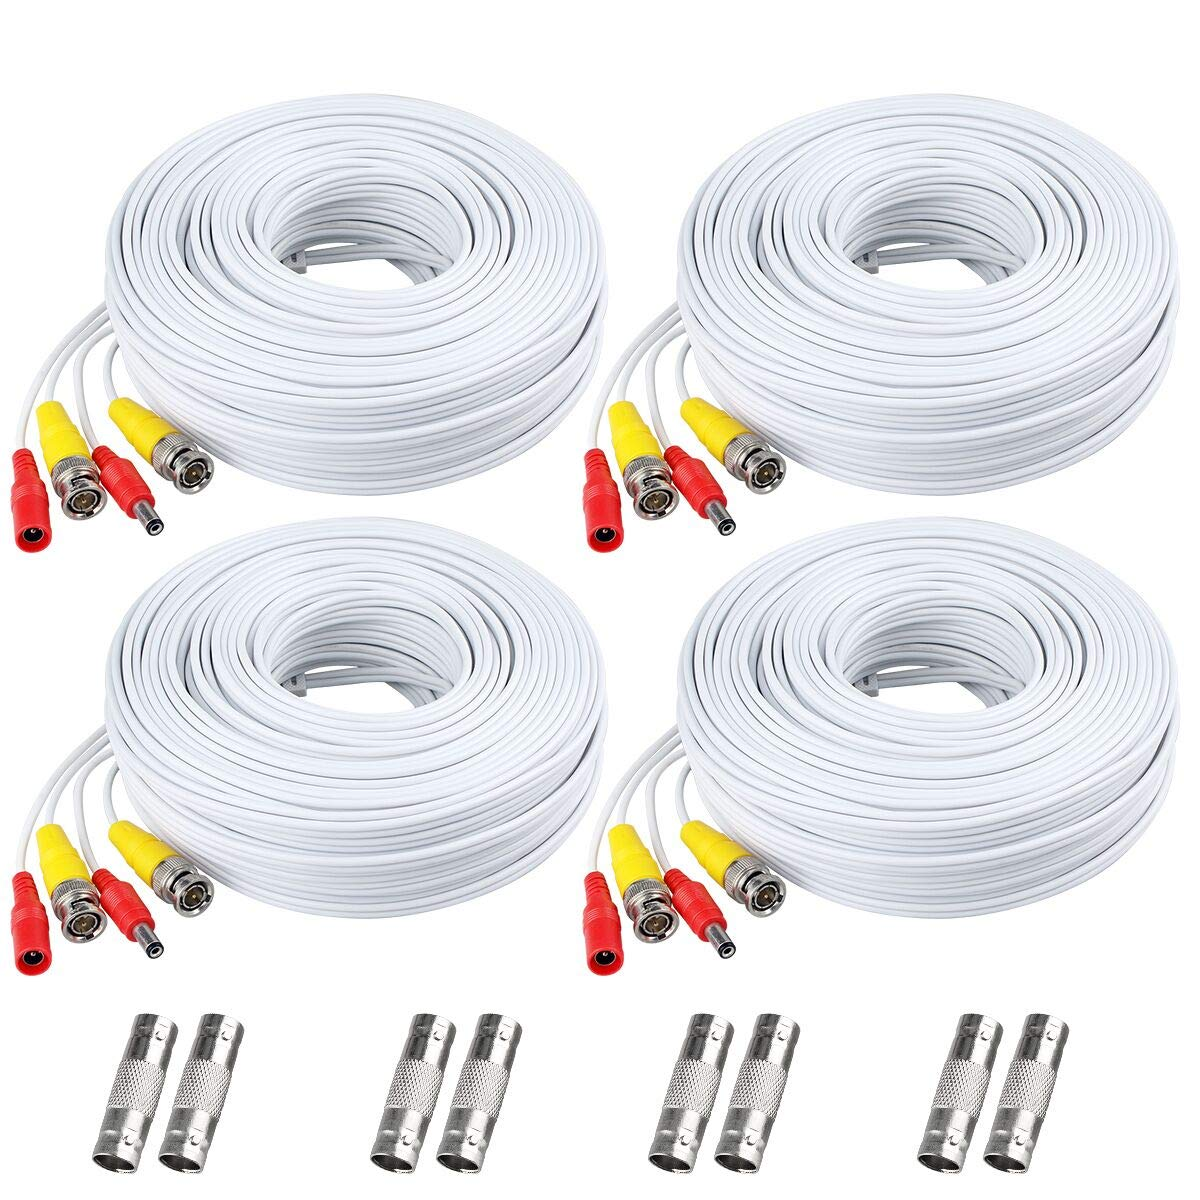 BNC Cable, 150ft 4Pack All-in-One Siames Video and Power Security Camera Wire Cord with 2 Female Connectors for All HD CCTV DVR Surveillance System (4x150FT BNC Cable White) by WildvisionHD